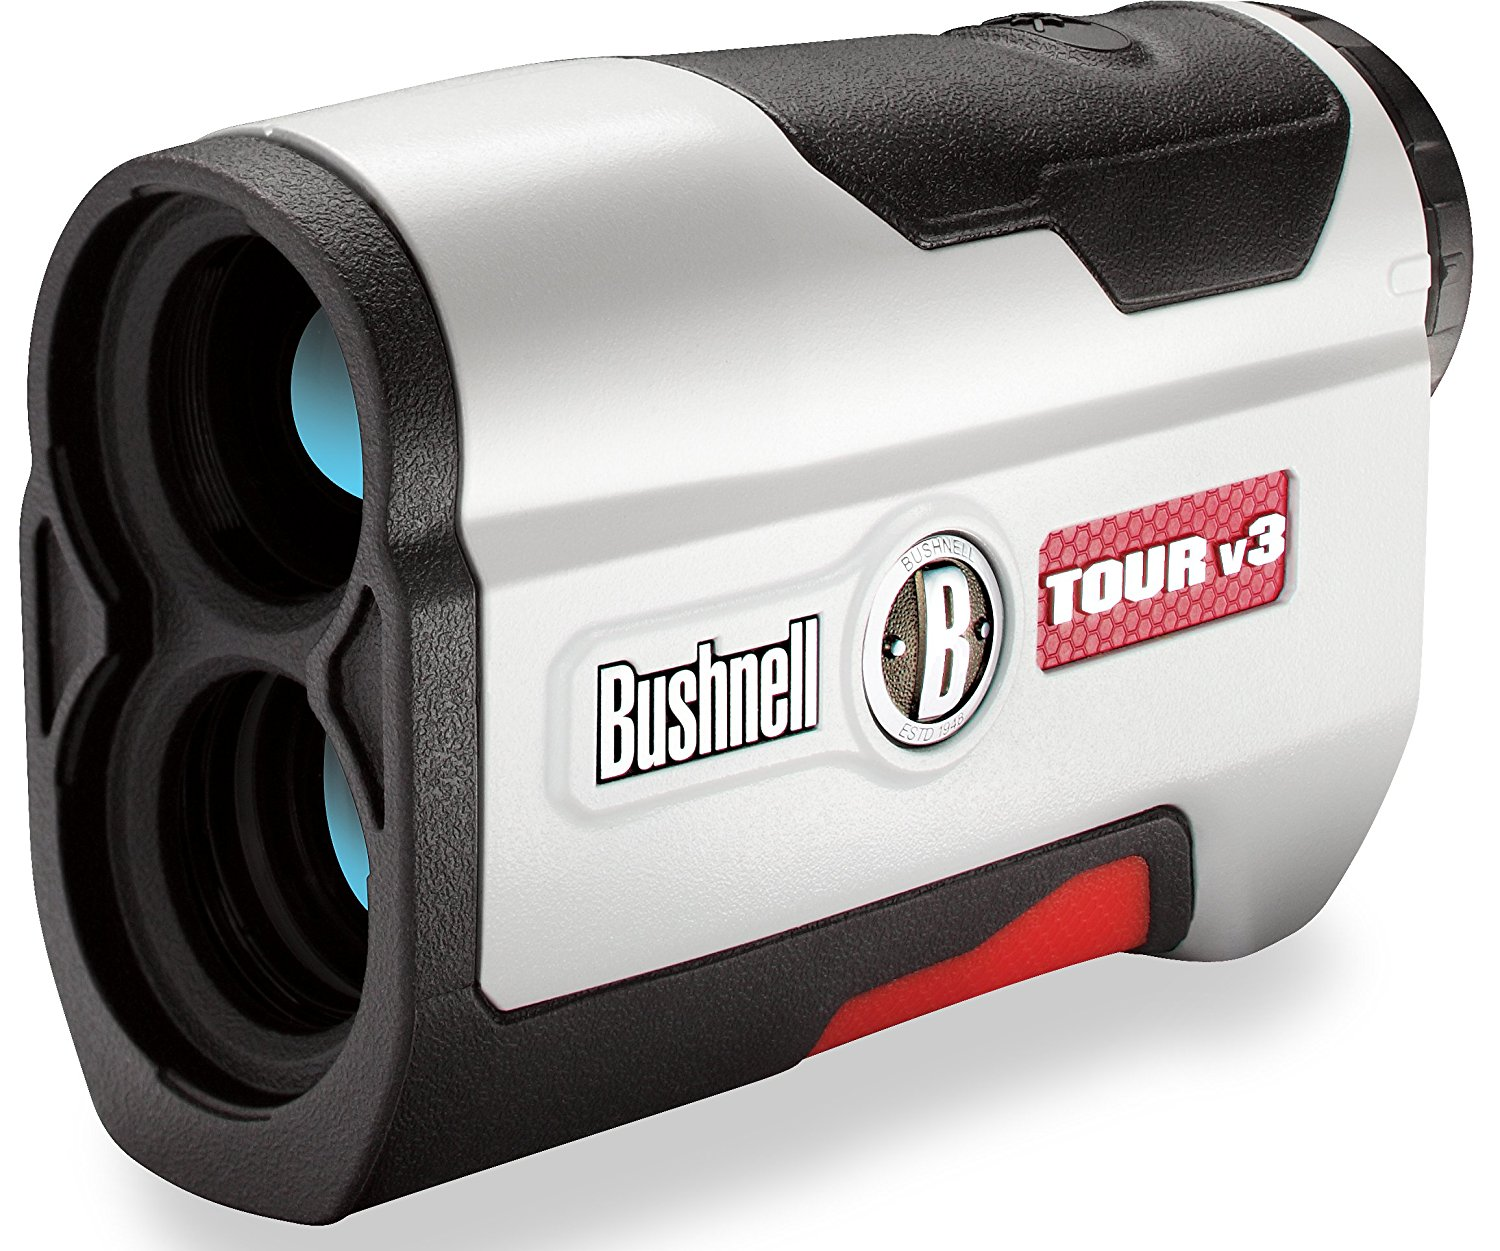 The Best Golf Range Finder For Accurate Distance Control